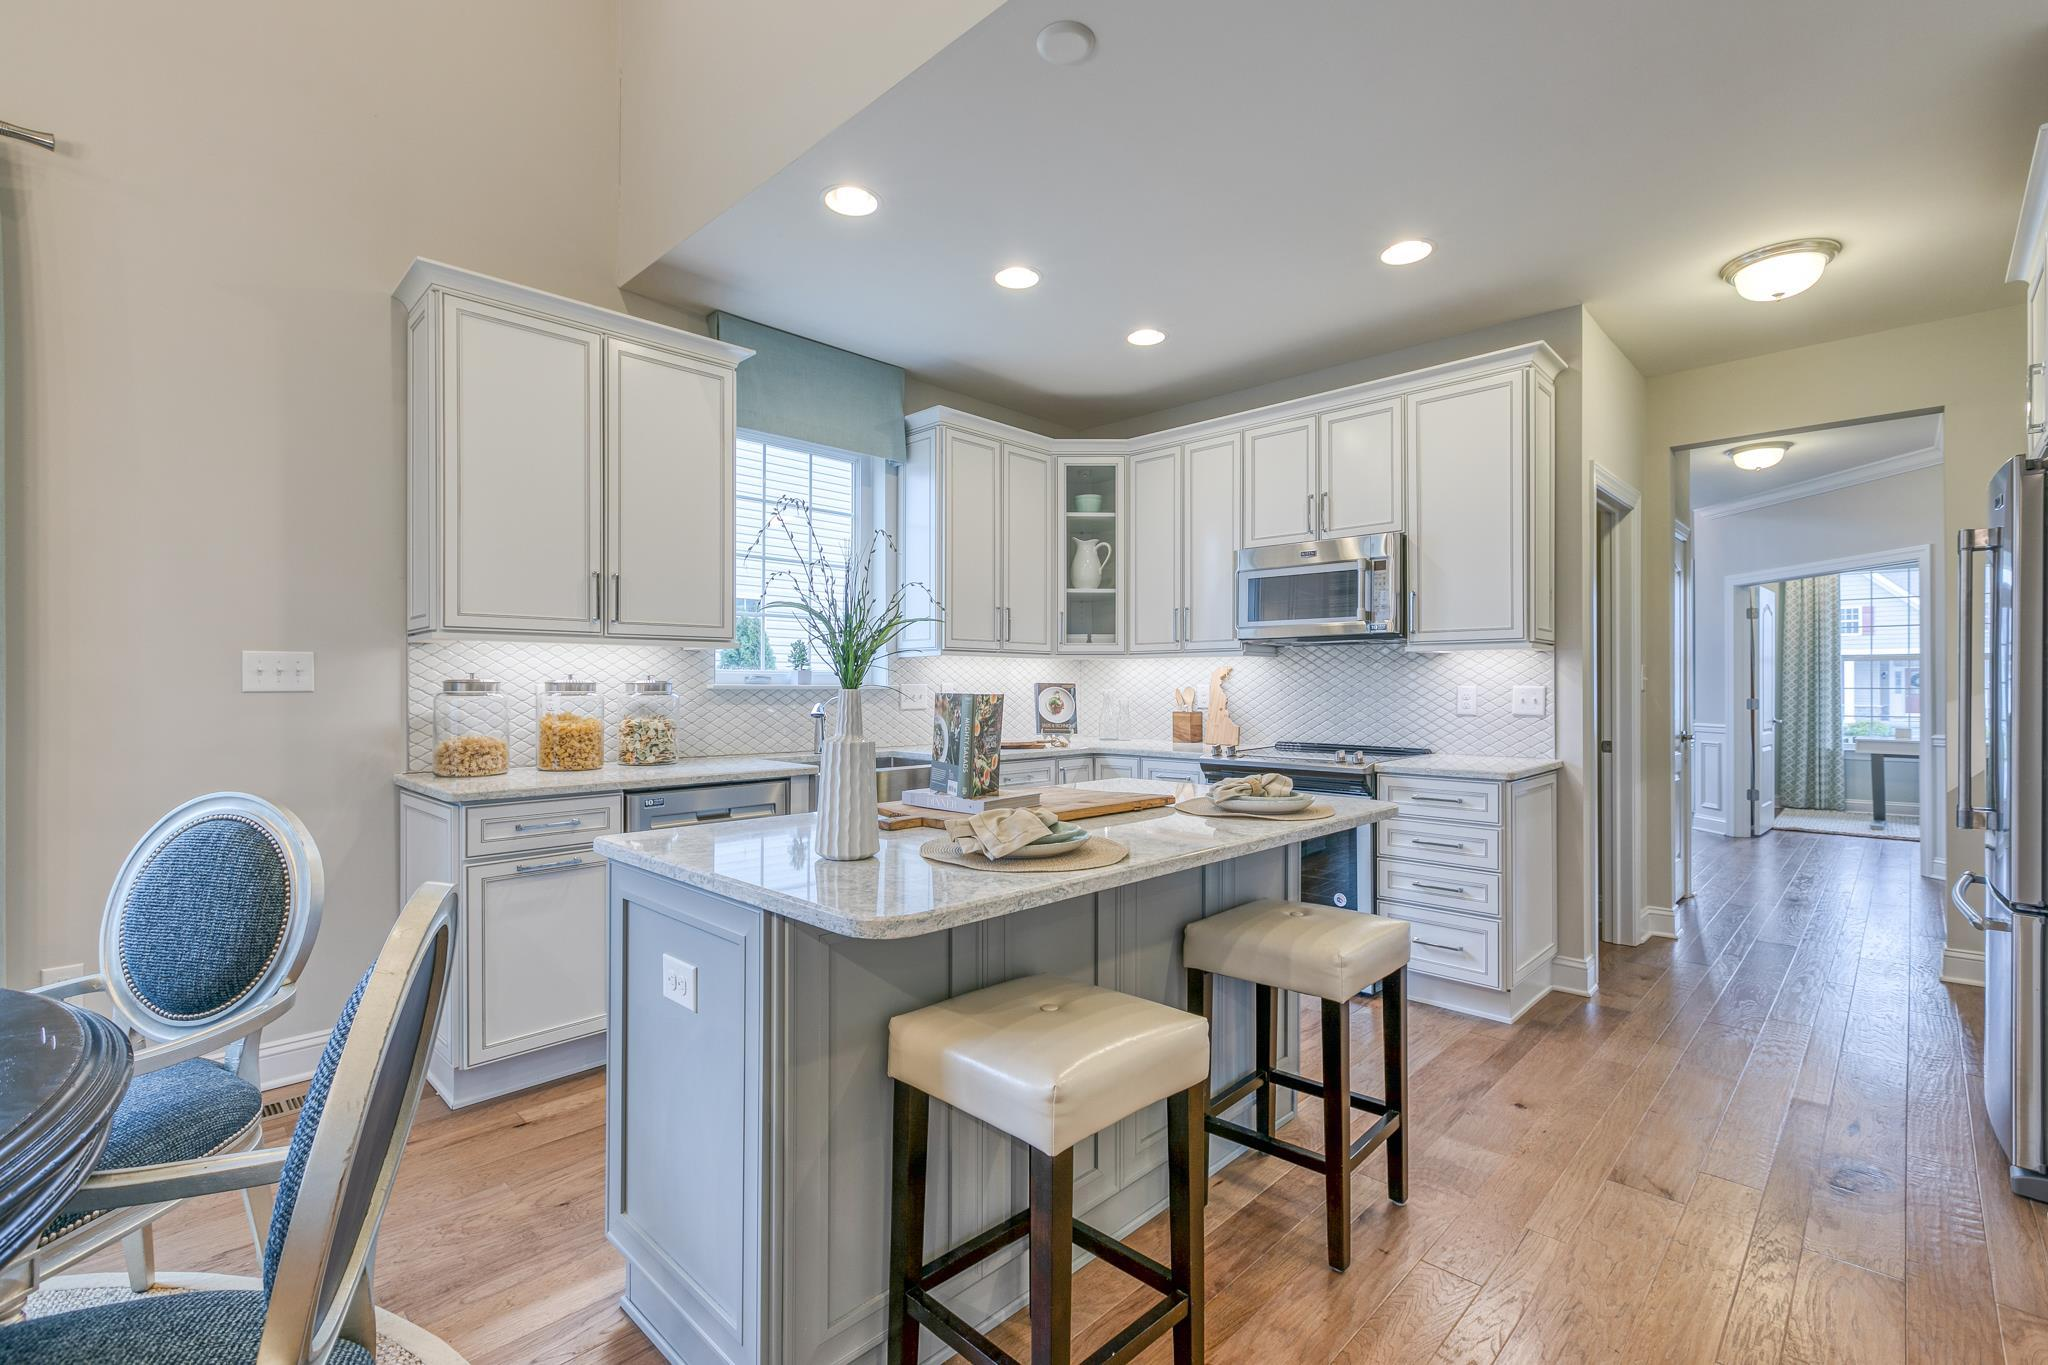 Kitchen featured in The Dalton By McKee Builders in Dover, DE